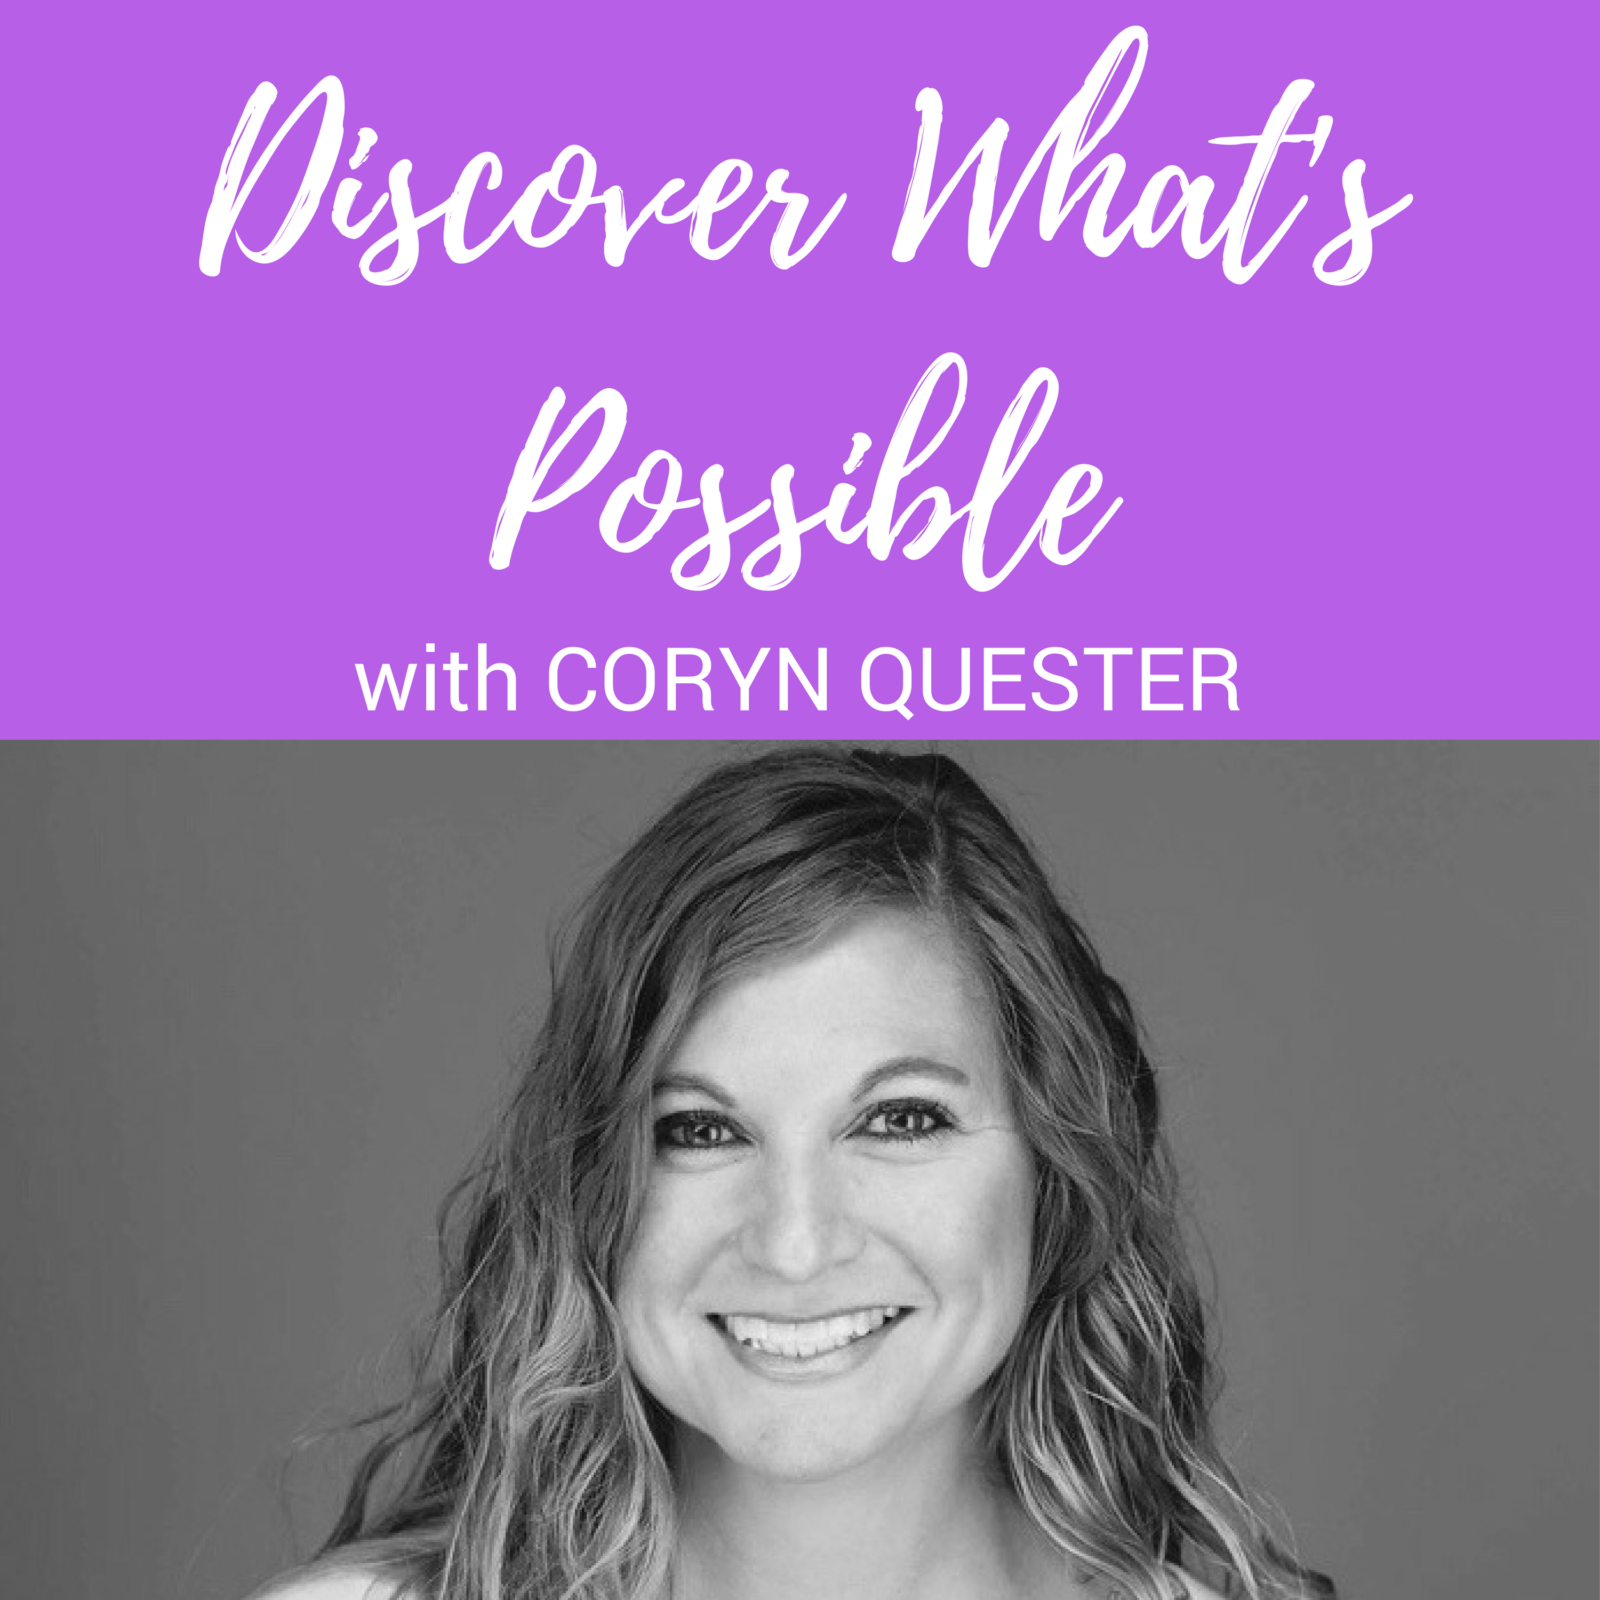 Coryn+Quester+Coaching+Podcast.png